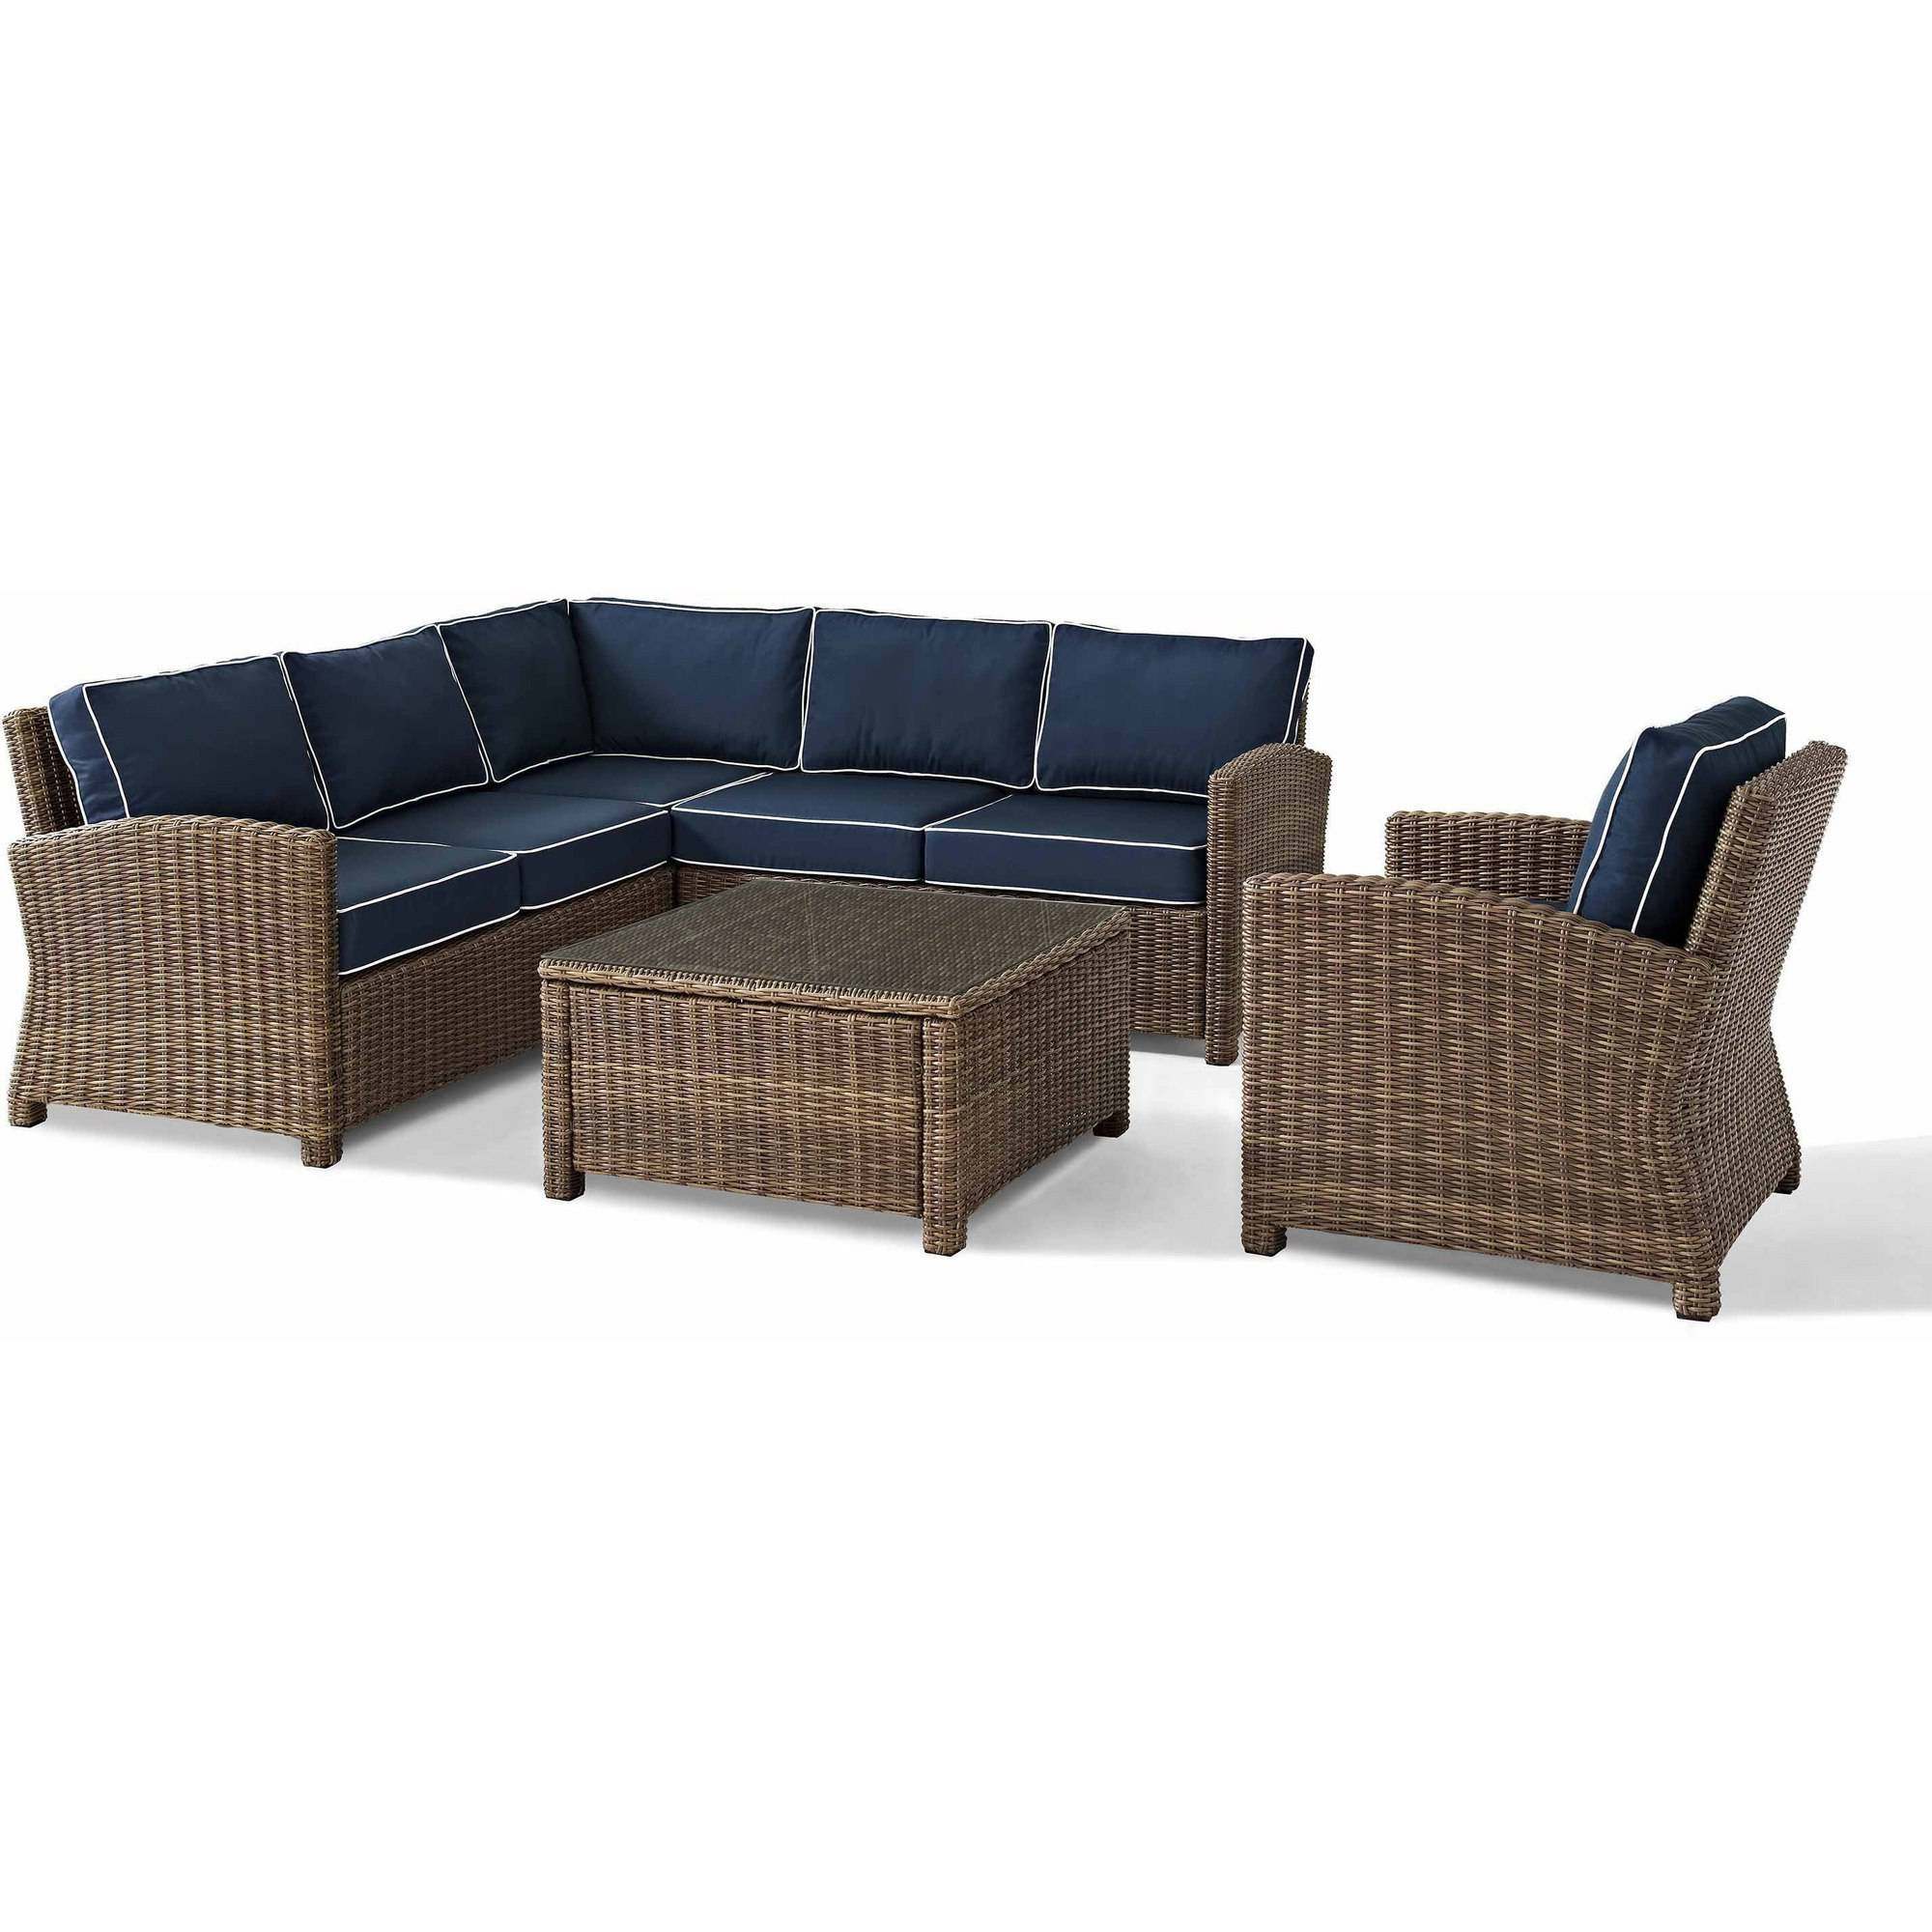 crosley furniture bradenton 5piece outdoor wicker seating set with navy cushions right corner loveseat left corner loveseat corner chair arm chair